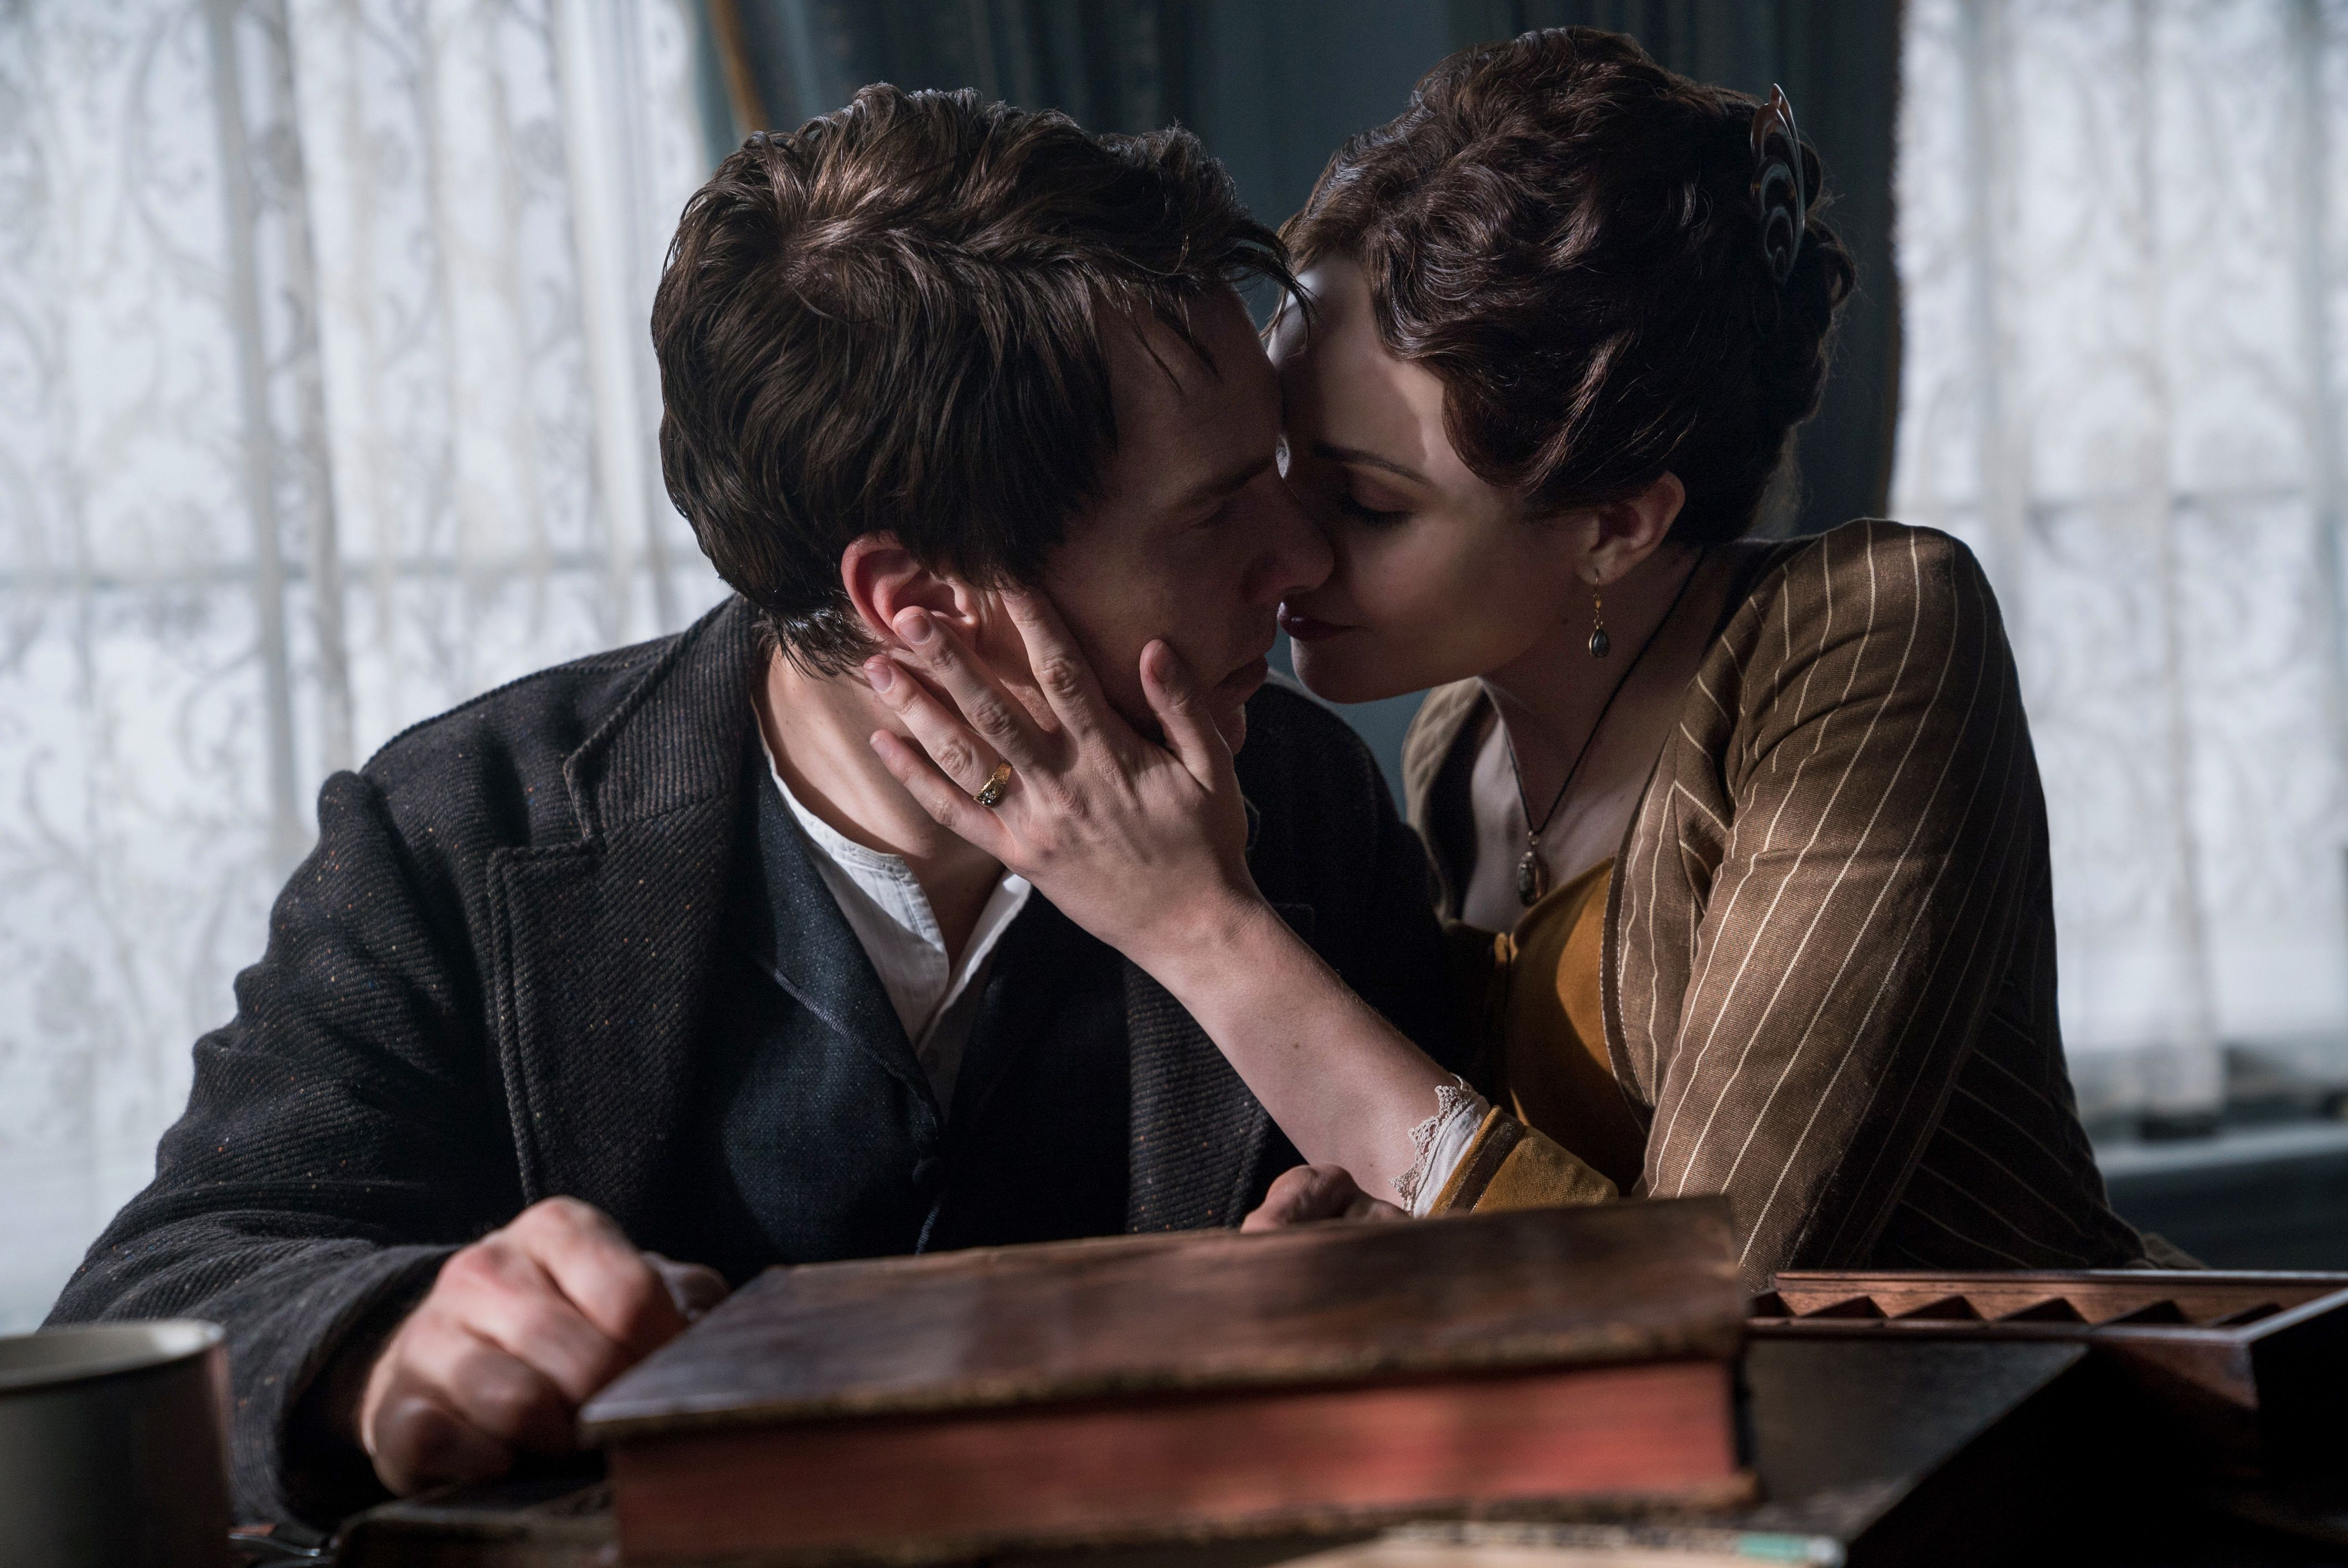 Tuppence Middleton says The Current War with Benedict Cumberbatch started as a musical